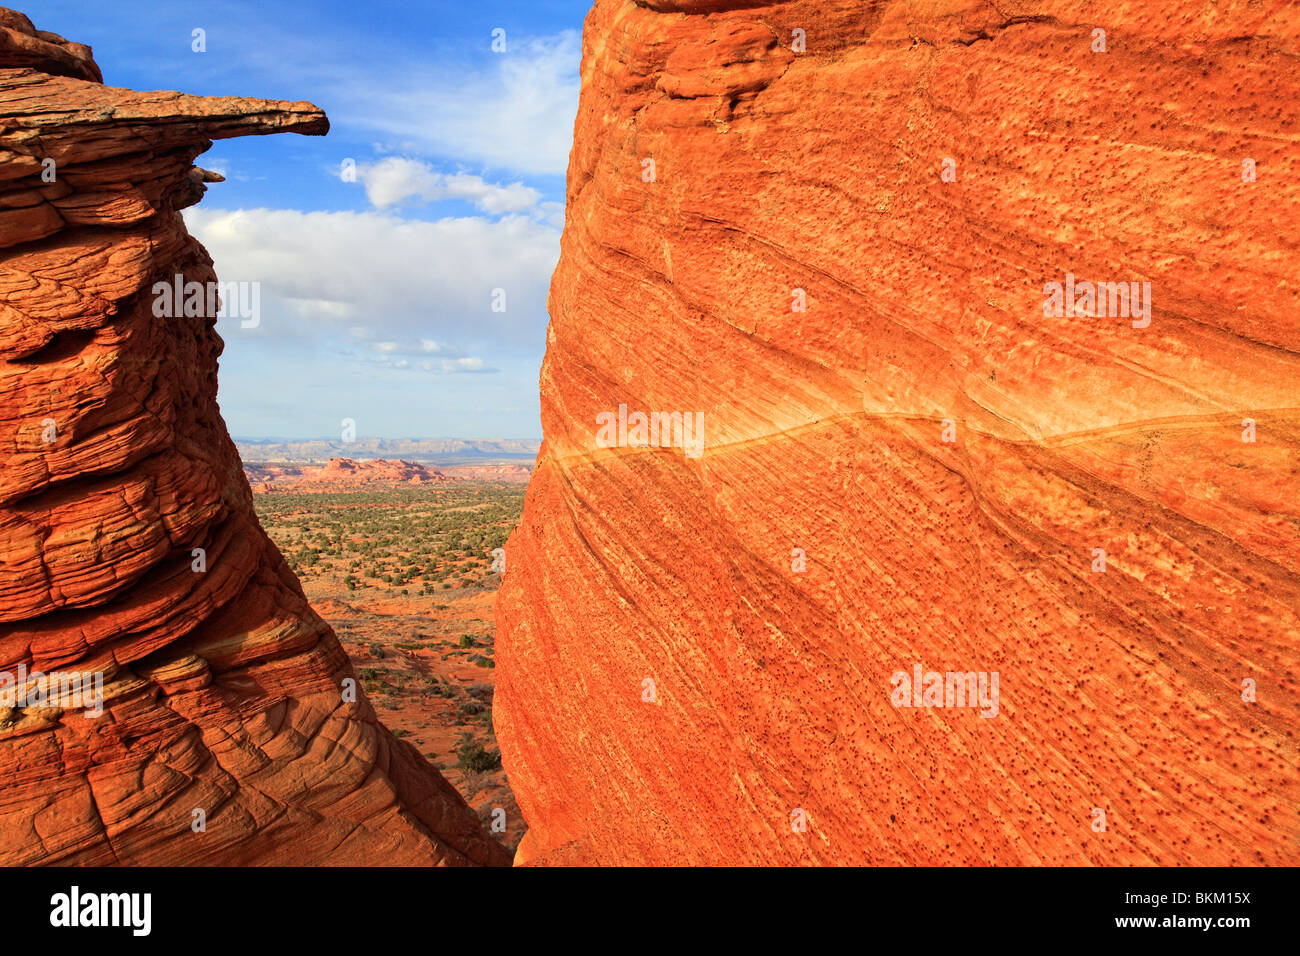 Rock window in the Vermilion Cliffs National Monument - Stock Image